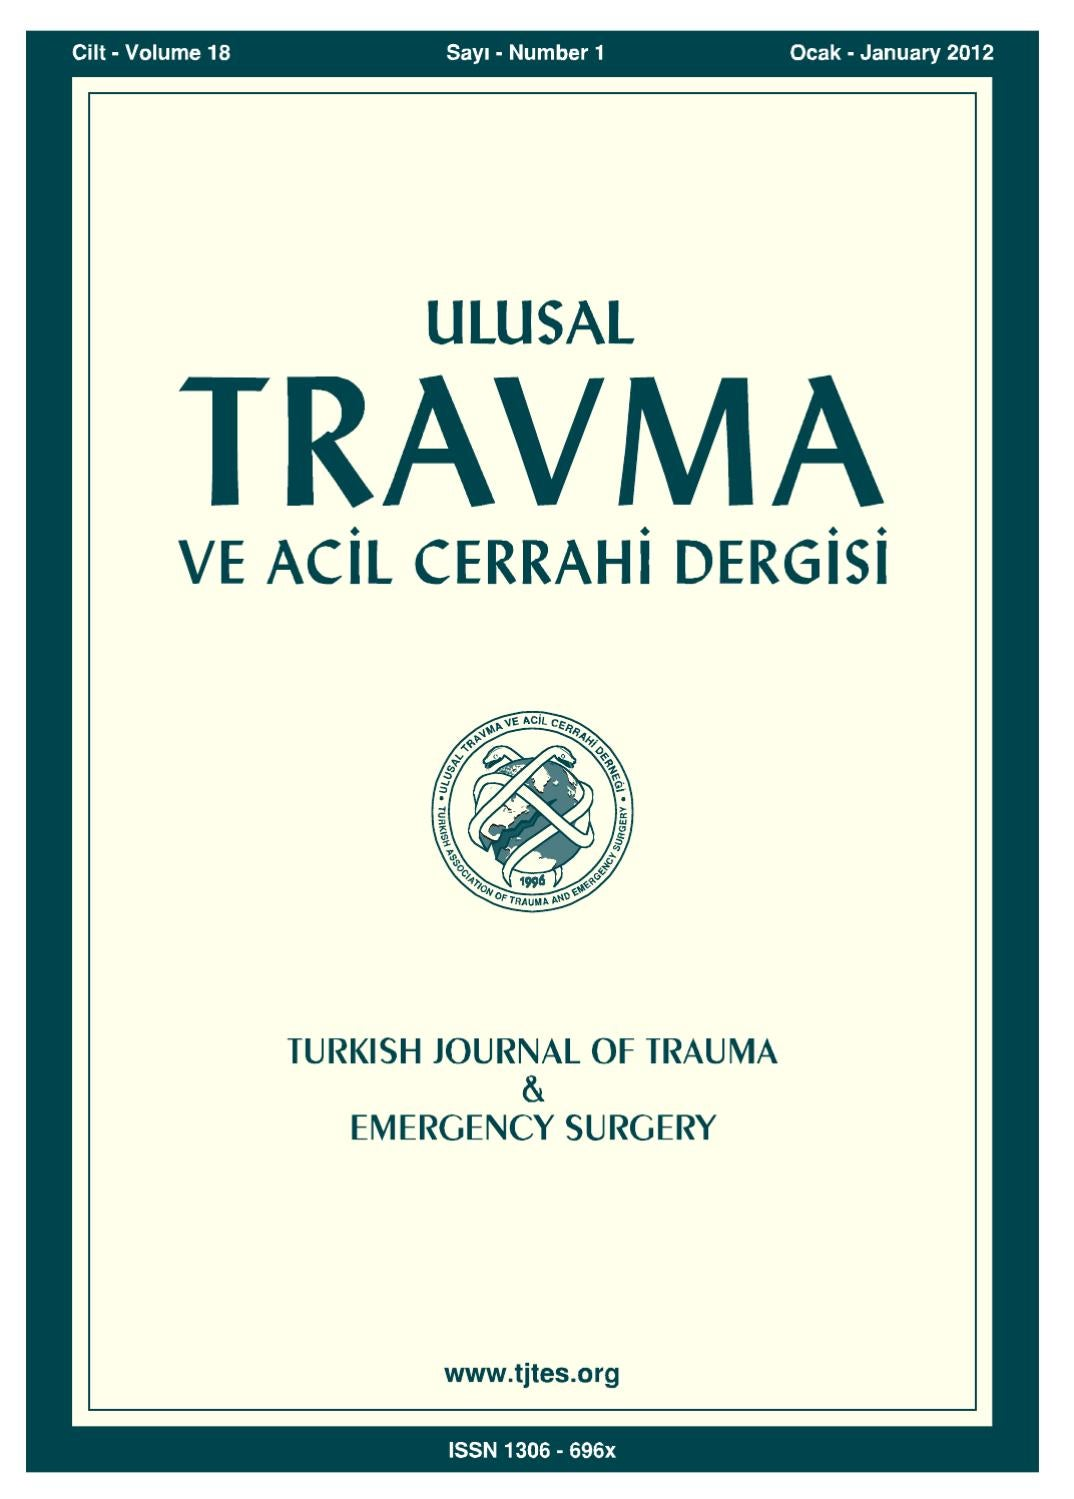 Travma 2012 1 By Karepublishing Issuu